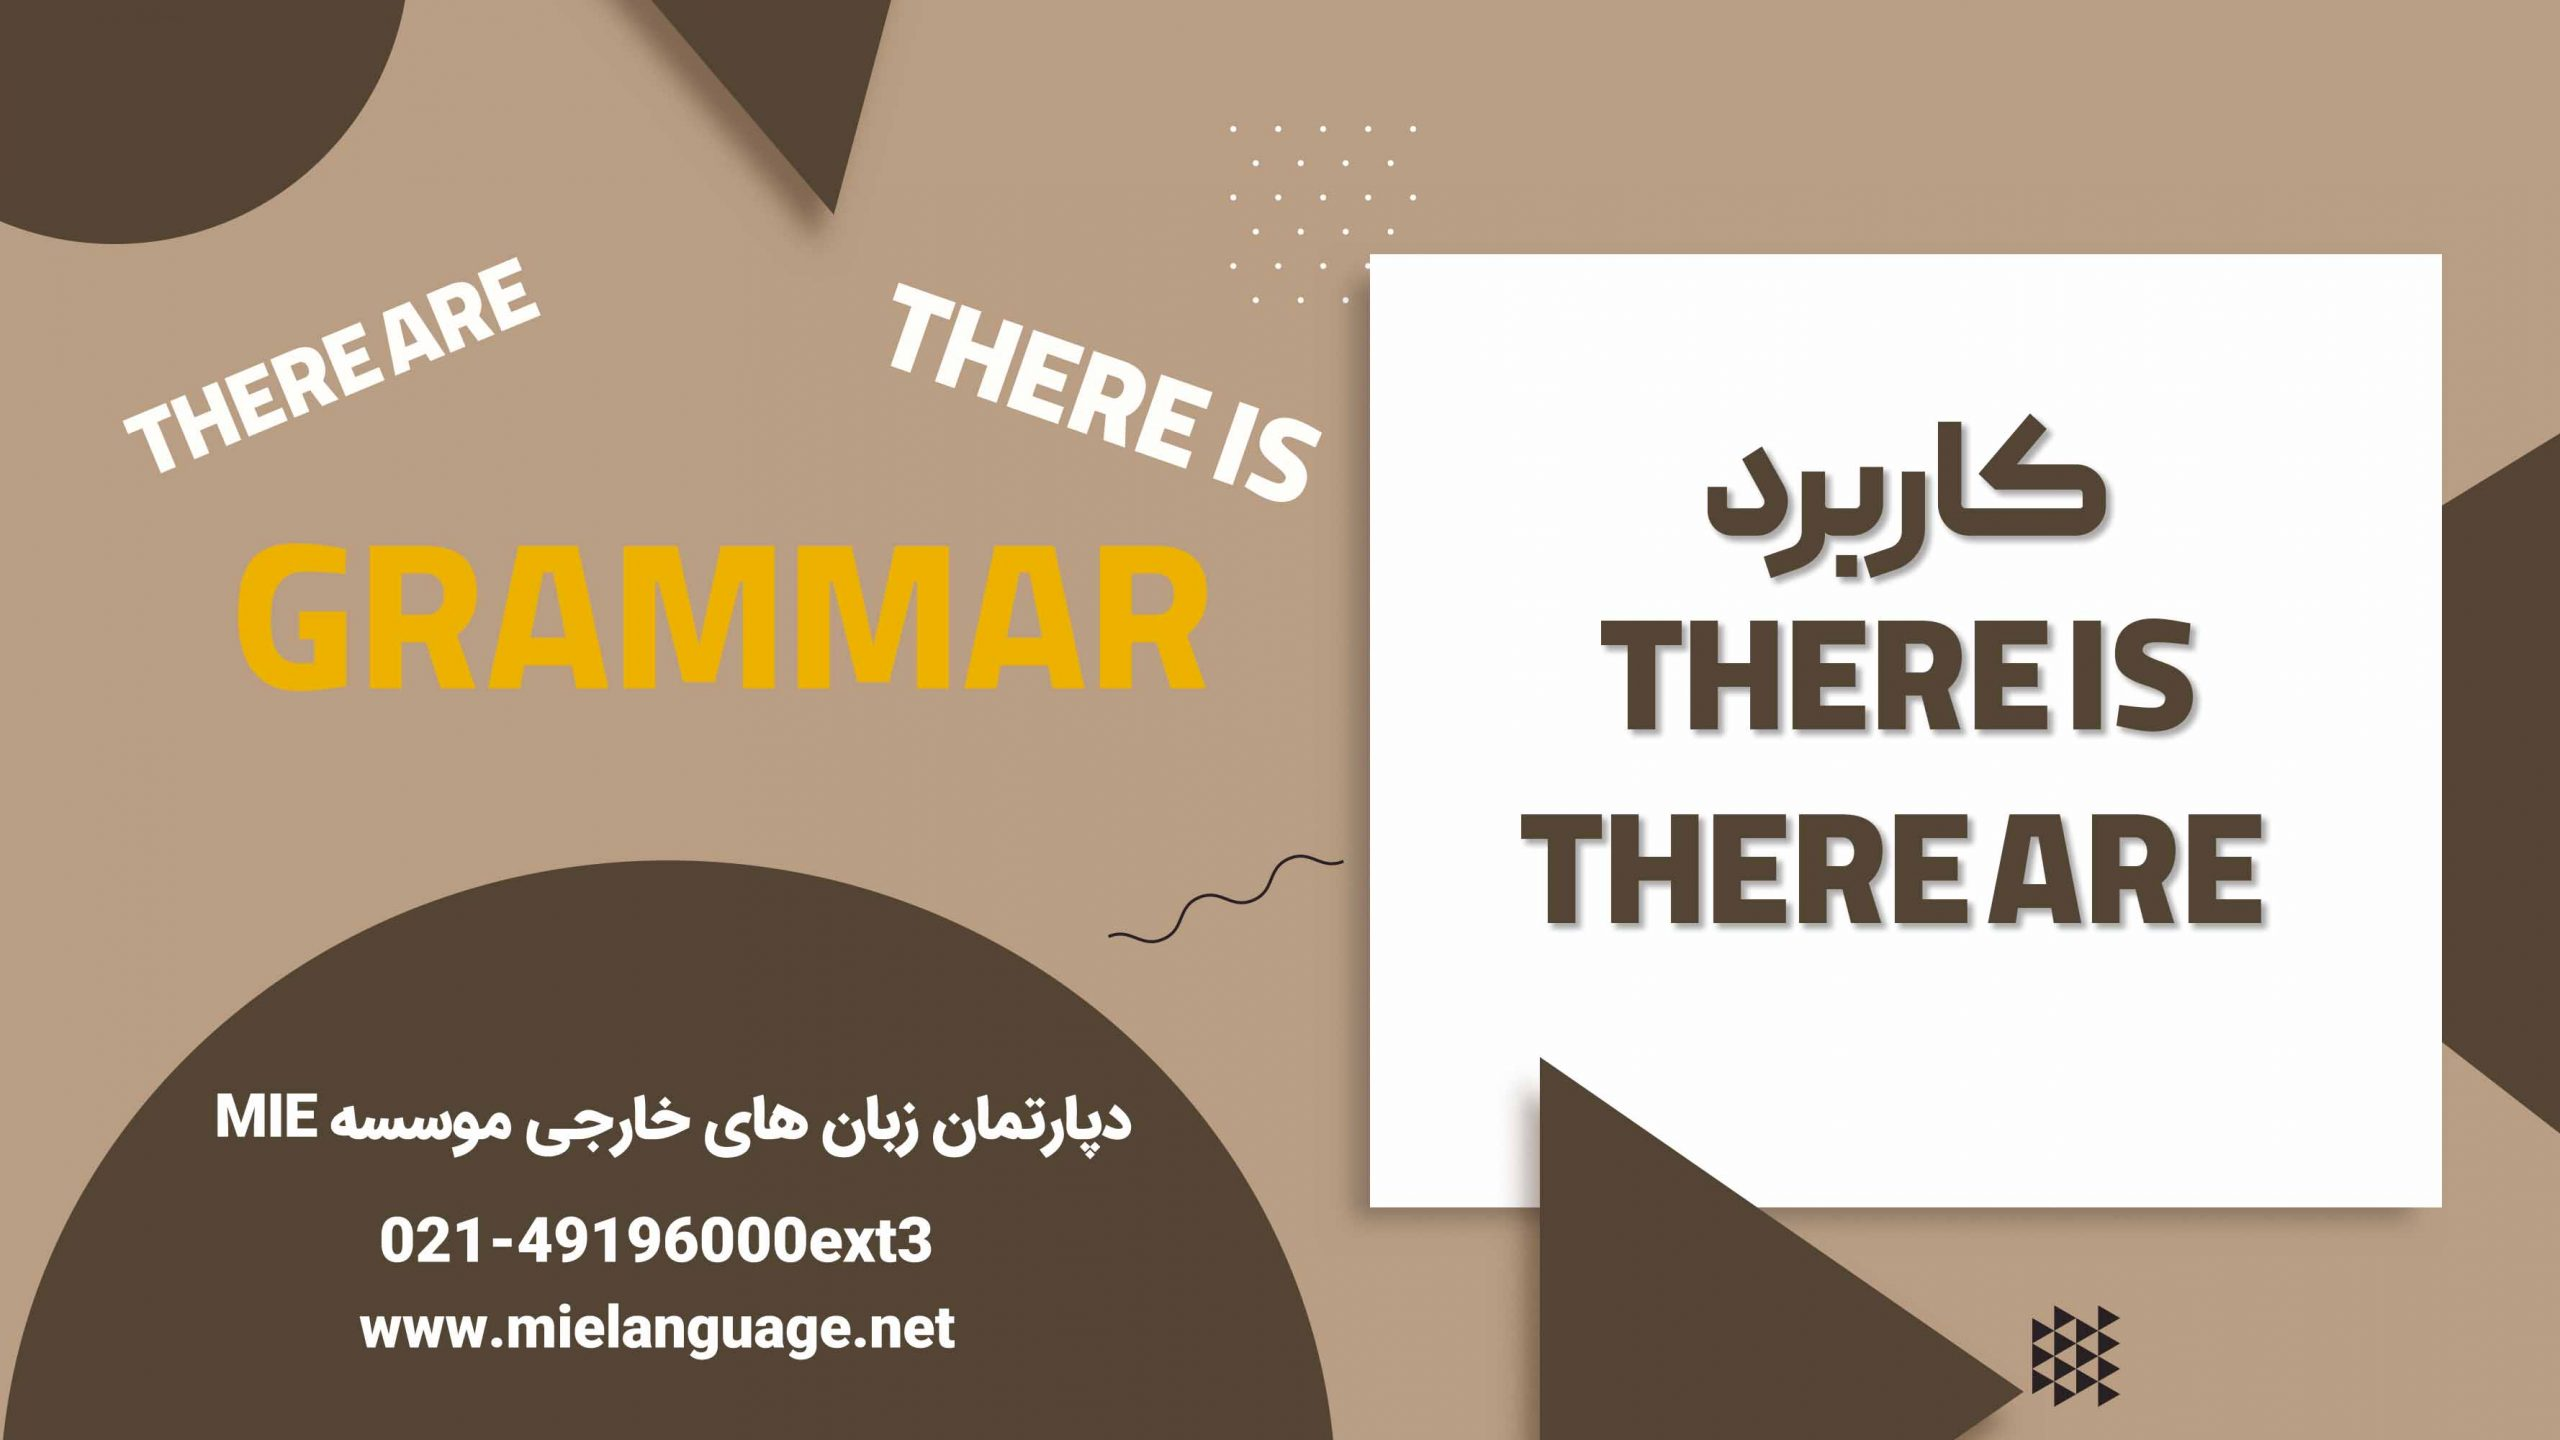 کاربرد There is و There are